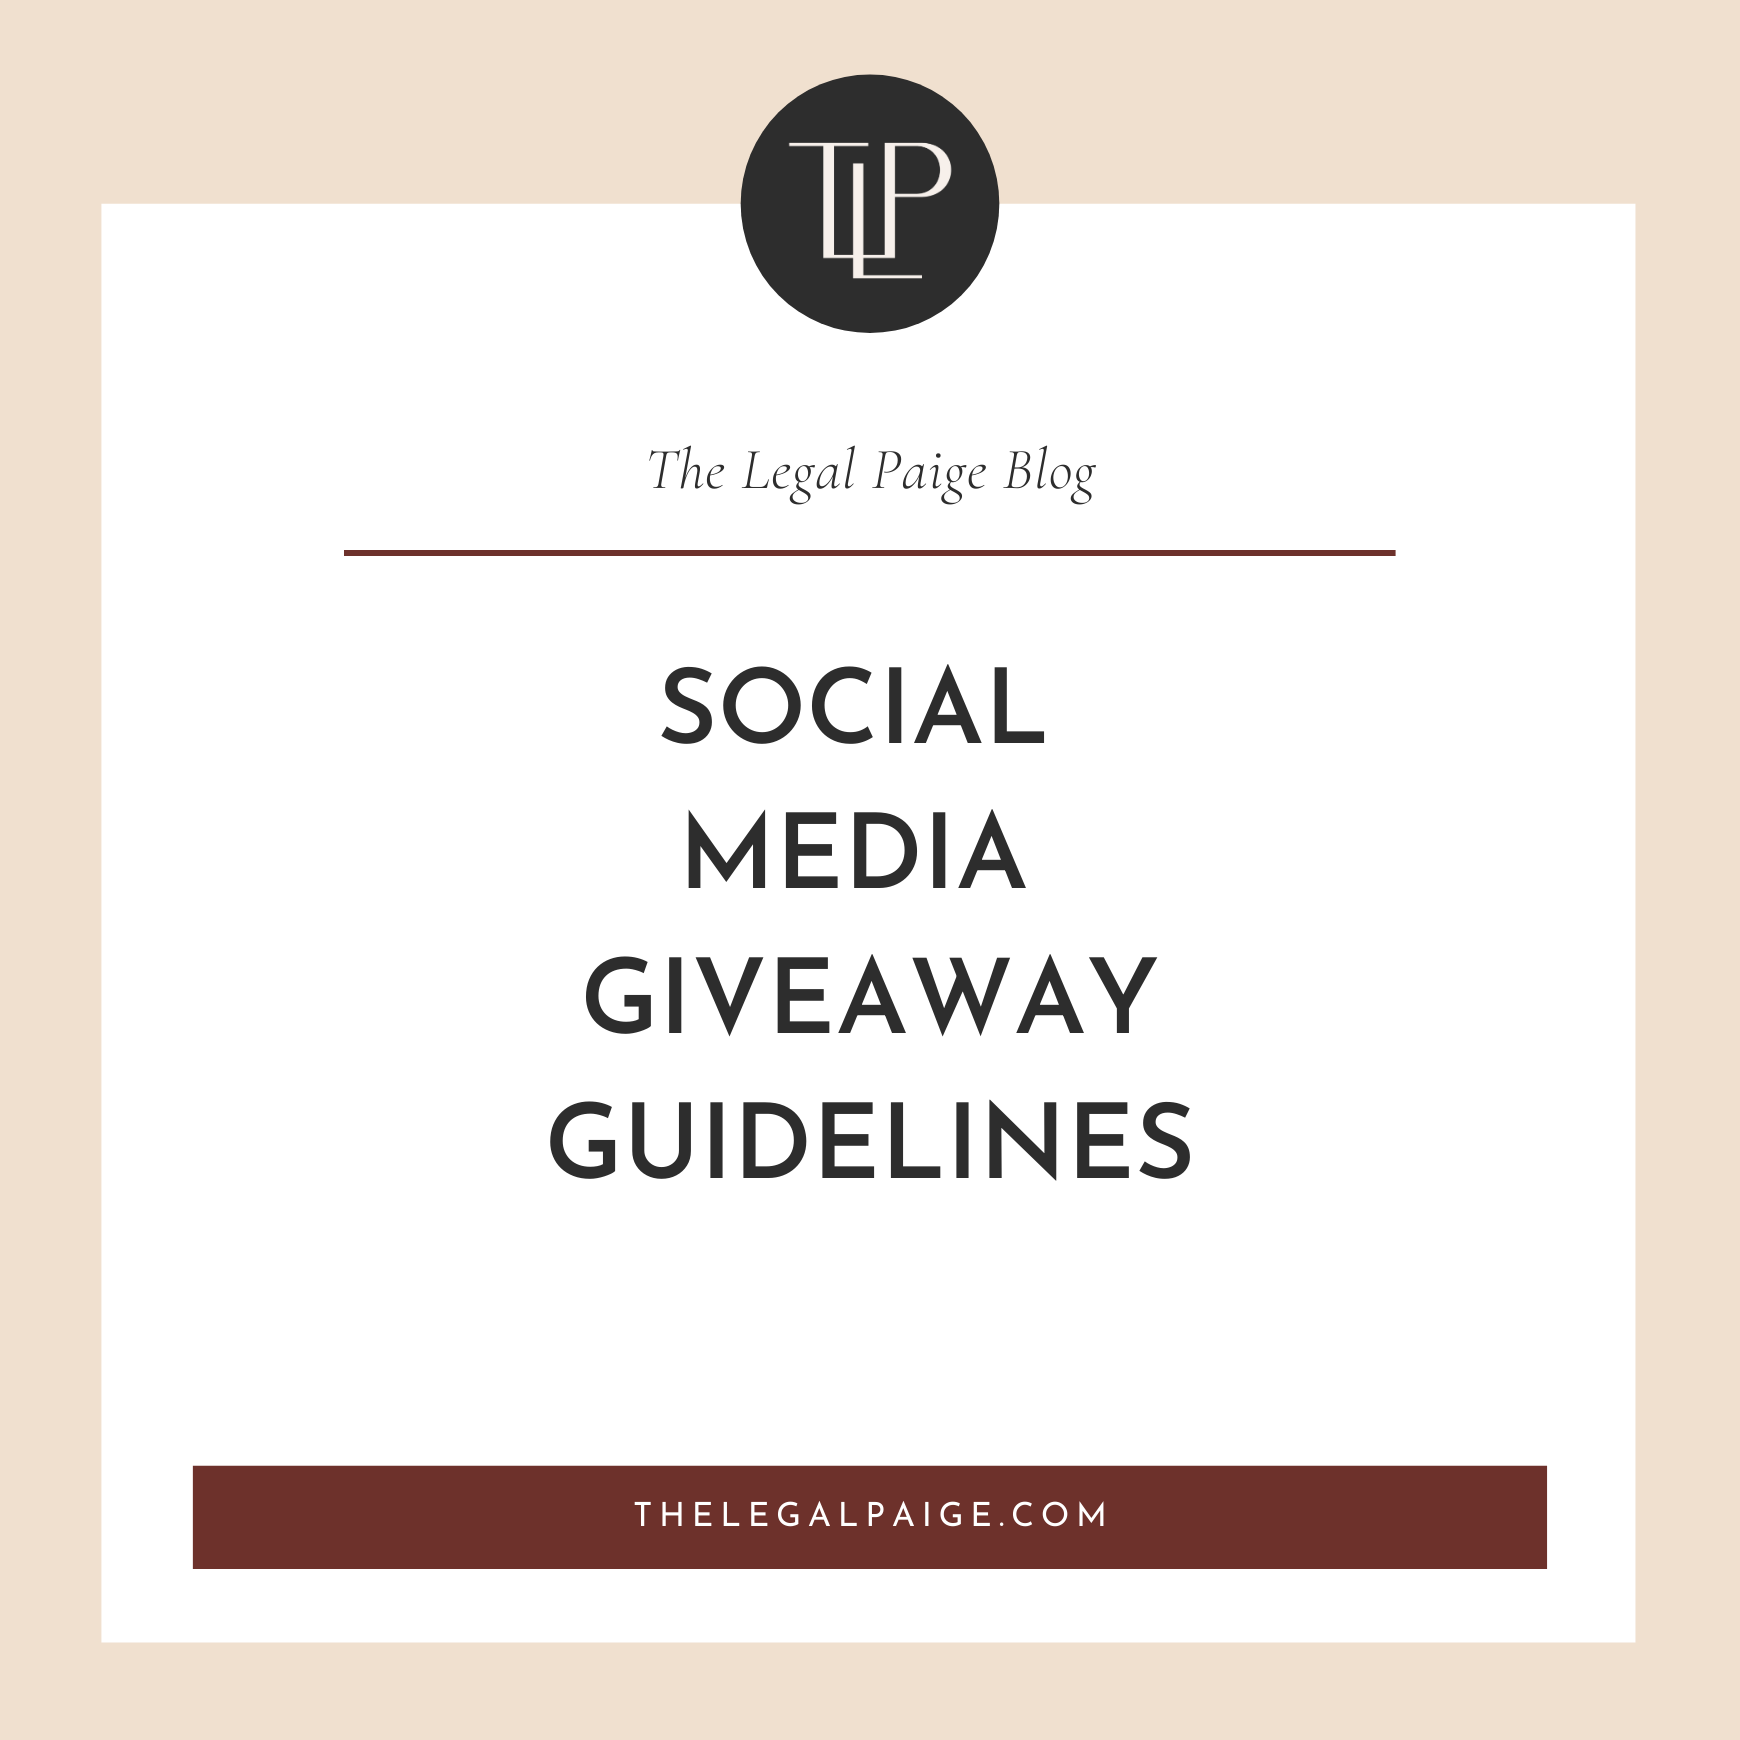 Social Media Giveaway Guidelines